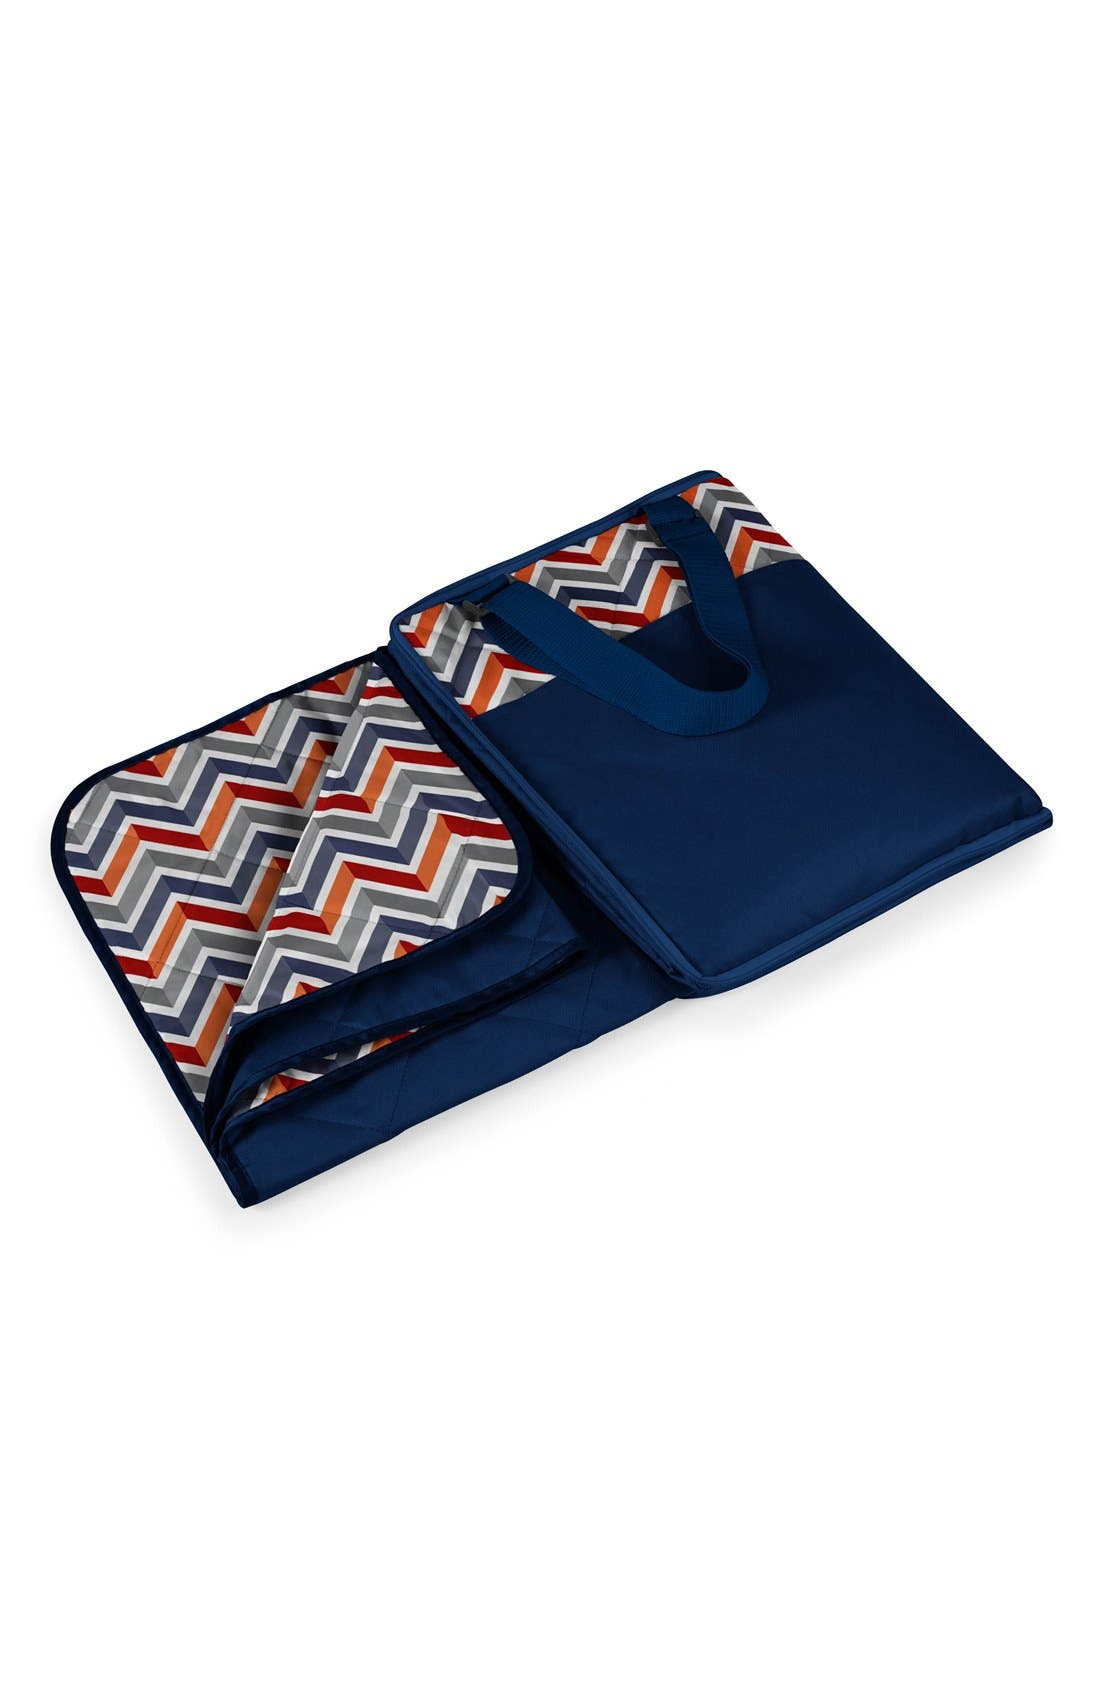 Main Image - Picnic Time 'Vista' Packable Picnic Blanket